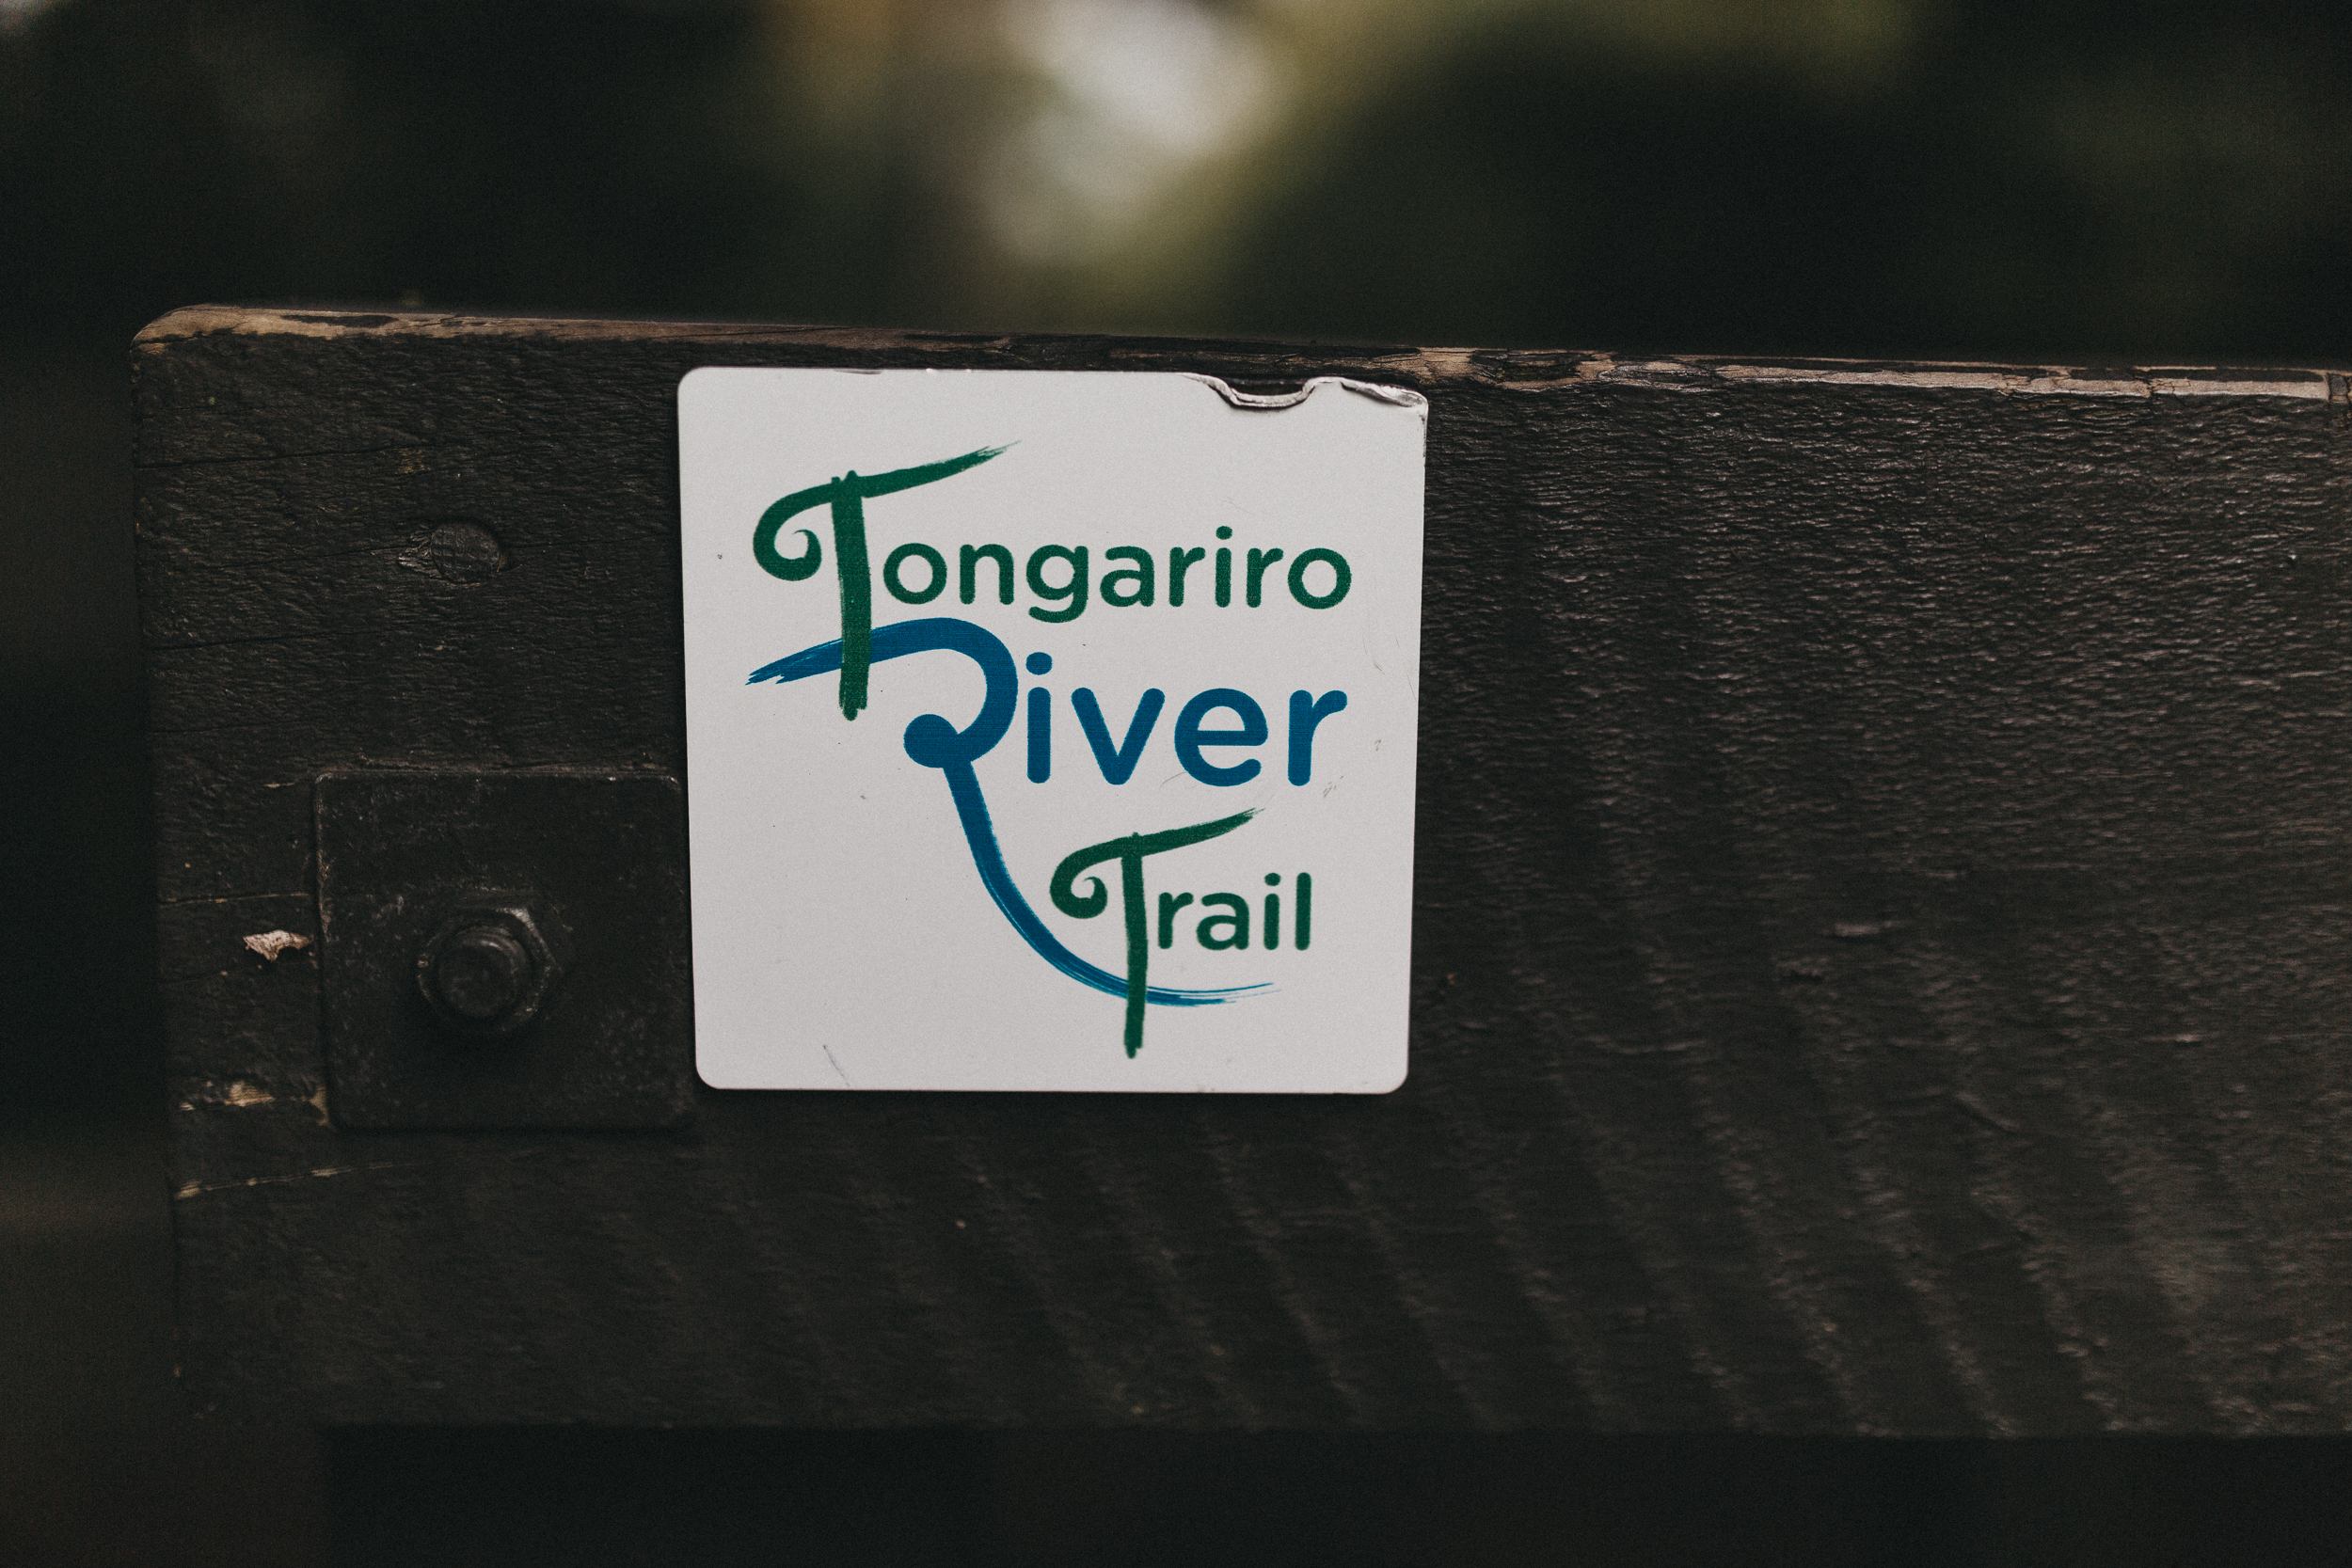 Day Two: the Tongariro River trail departing from Turangi, an easy walk along the river (10 min drive from Pukawa Bay).